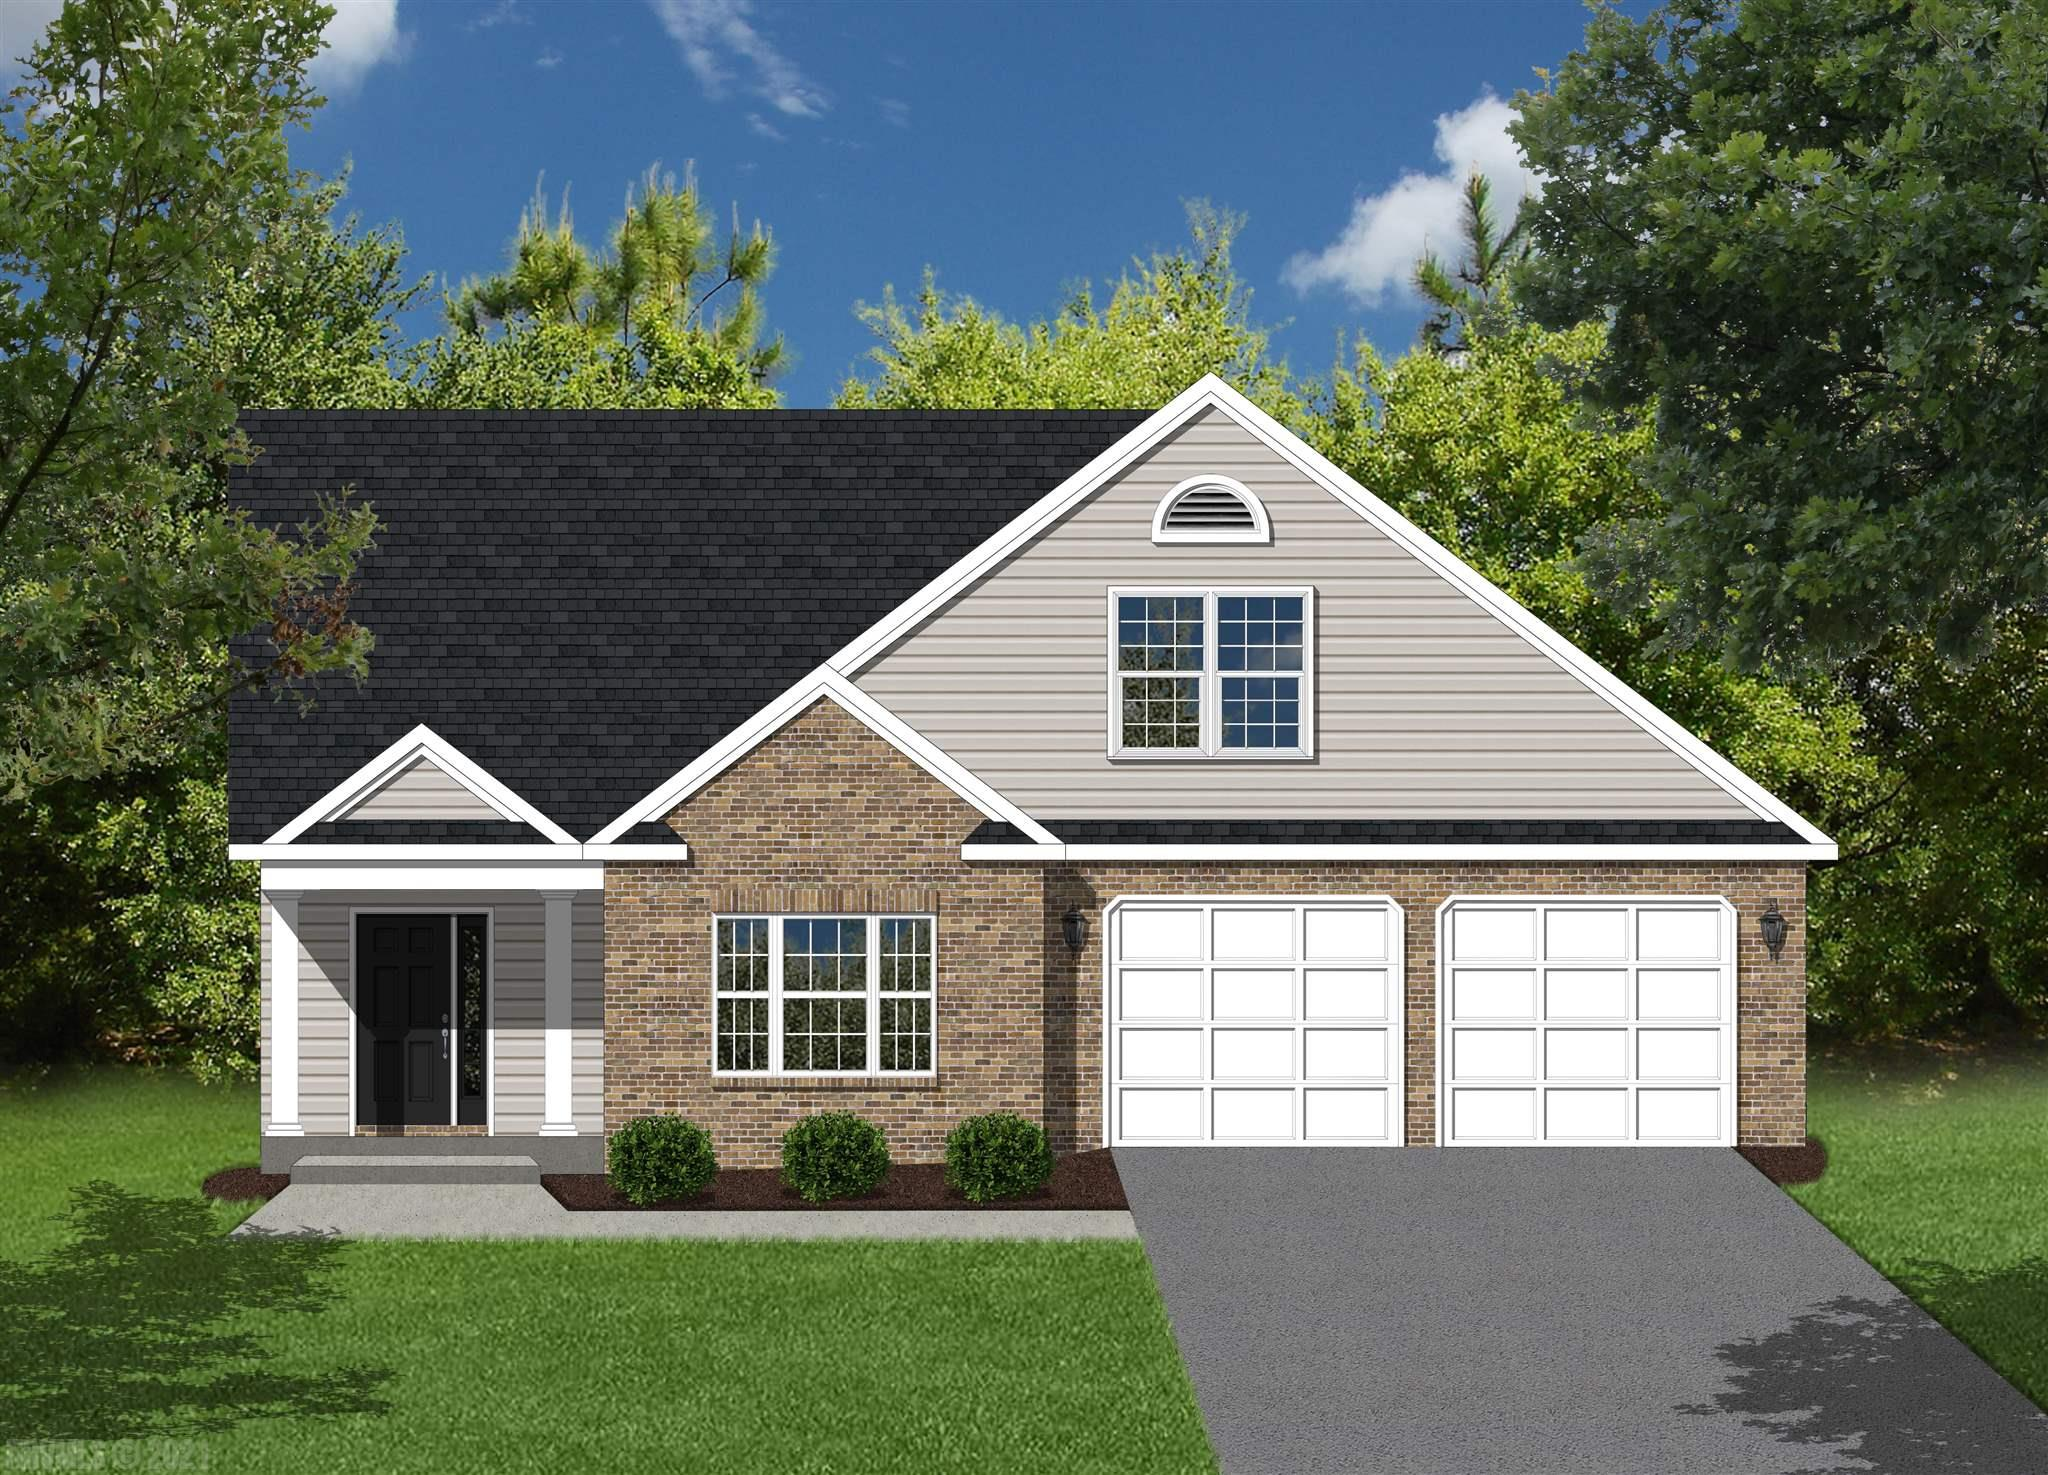 This is a proposed home that is not yet under construction. Please find information below and pictures attached for our Georgetown style home which offers 2346 square feet above grade, and 9' framed walls on first floor with smooth drywall finish.  This house plan incorporates hardwoods on the entire main living level, ceramic tile in the baths and laundry, oak treads to the second floor if applicable, and carpet throughout remaining areas.  The master shower offers ceramic tiled walls and floor!  Premium Tahoe cabinets by Timberlake in the kitchen make the home even more beautiful.  The kitchen and bath counter tops are luxurious granite.  Upgraded trim in all finished areas.  Crown molding can be found in the dining room and master bedroom, as well as a chair rail with wainscoting in the dining room.  The exterior finishes consist of double-hung windows, brick, siding, and architectural shingles.